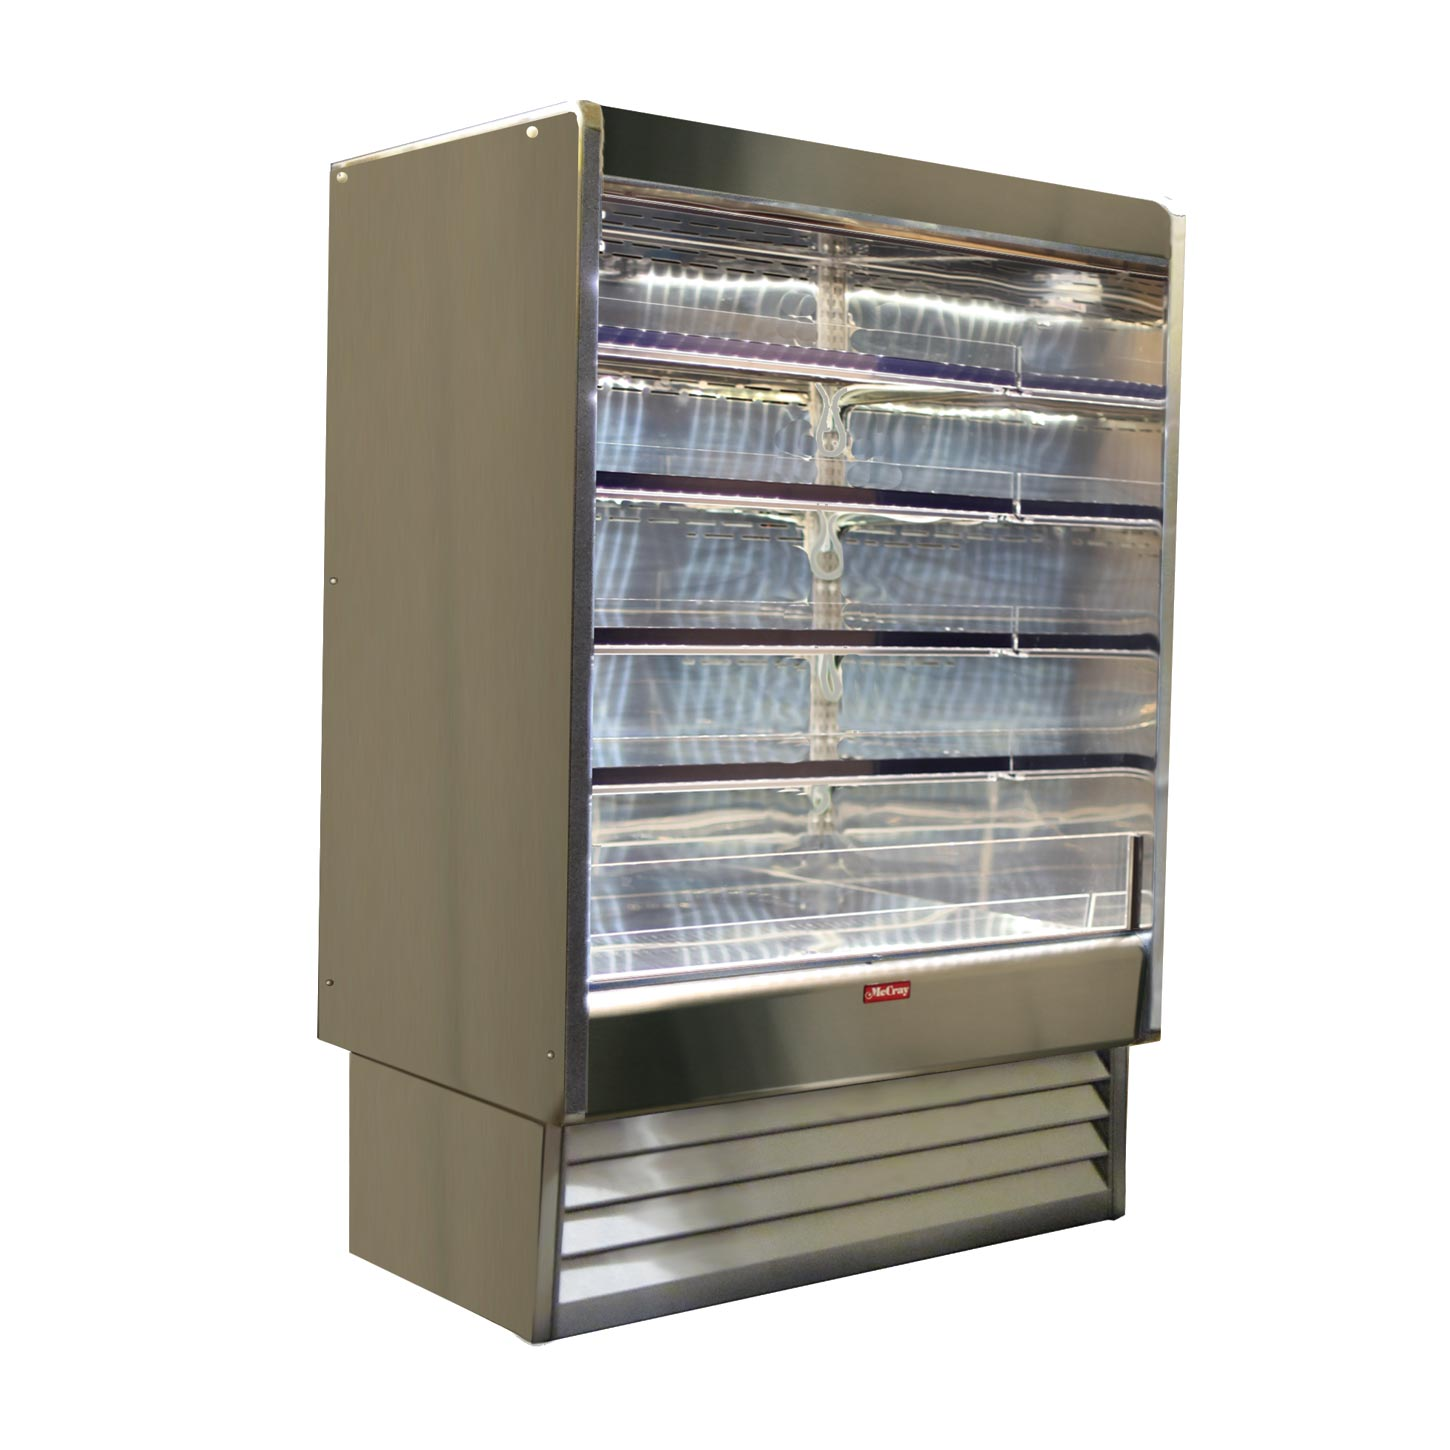 Howard-McCray R-OD35E-6S-LED merchandiser, open refrigerated display